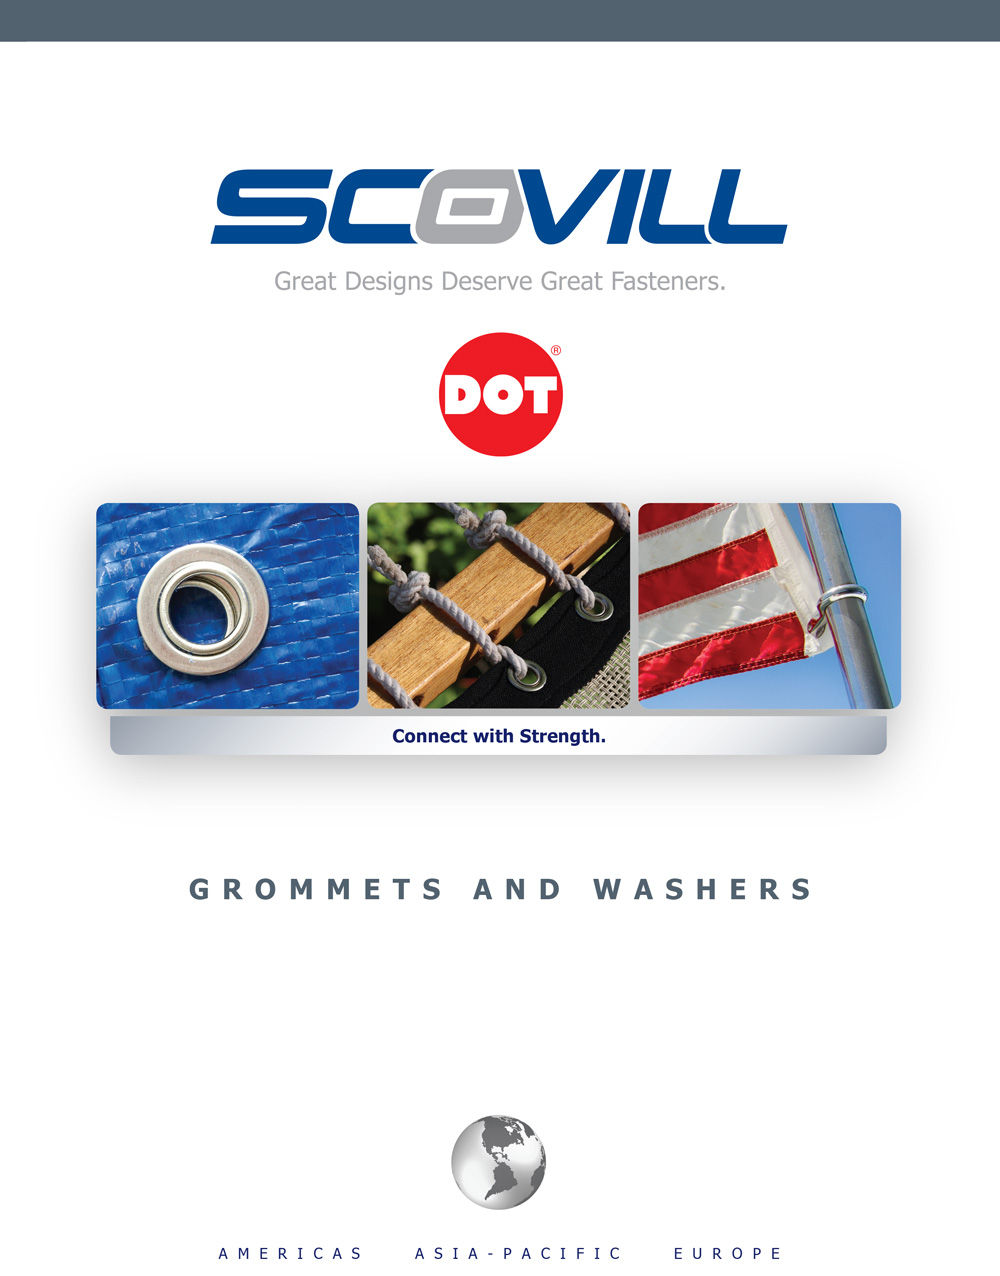 Scovill DOT Grommet and Washer Product Catalog